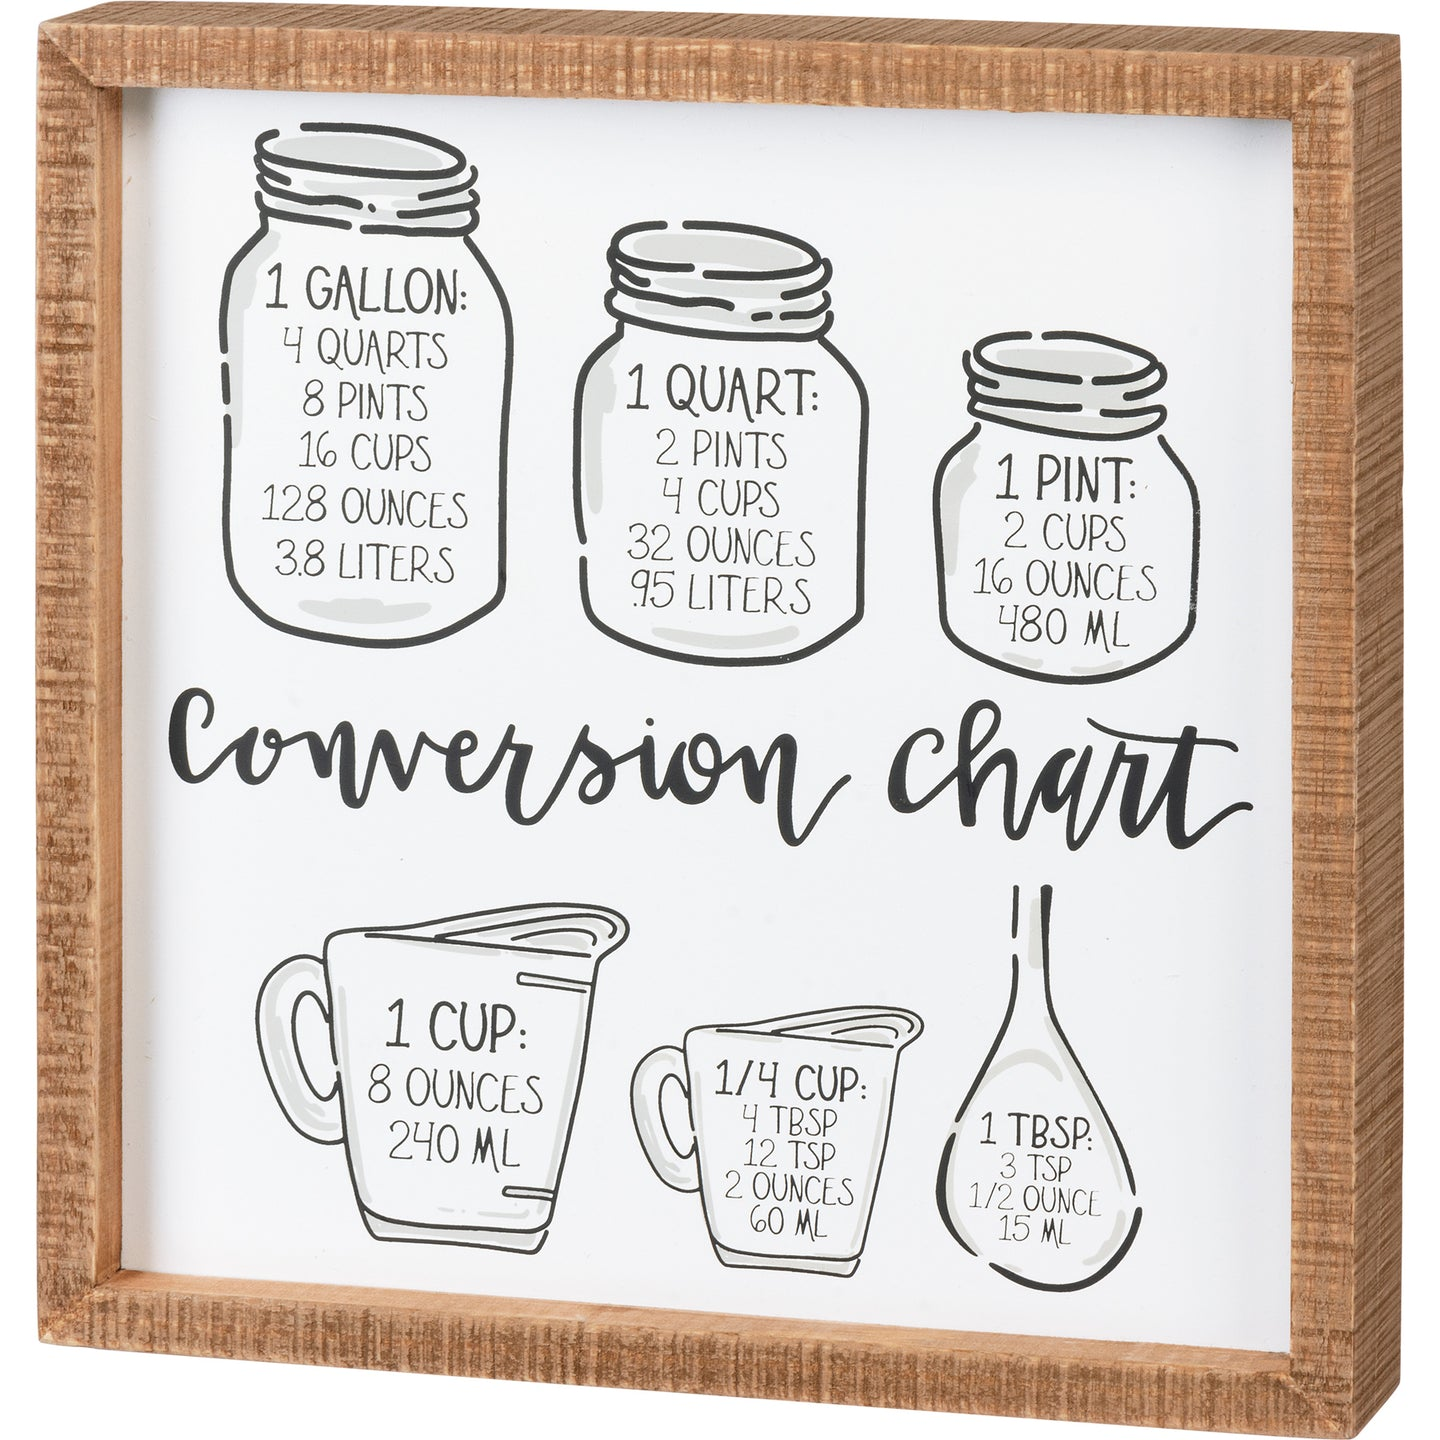 Conversion Chart Inset Box Sign - Vintage Crossroads